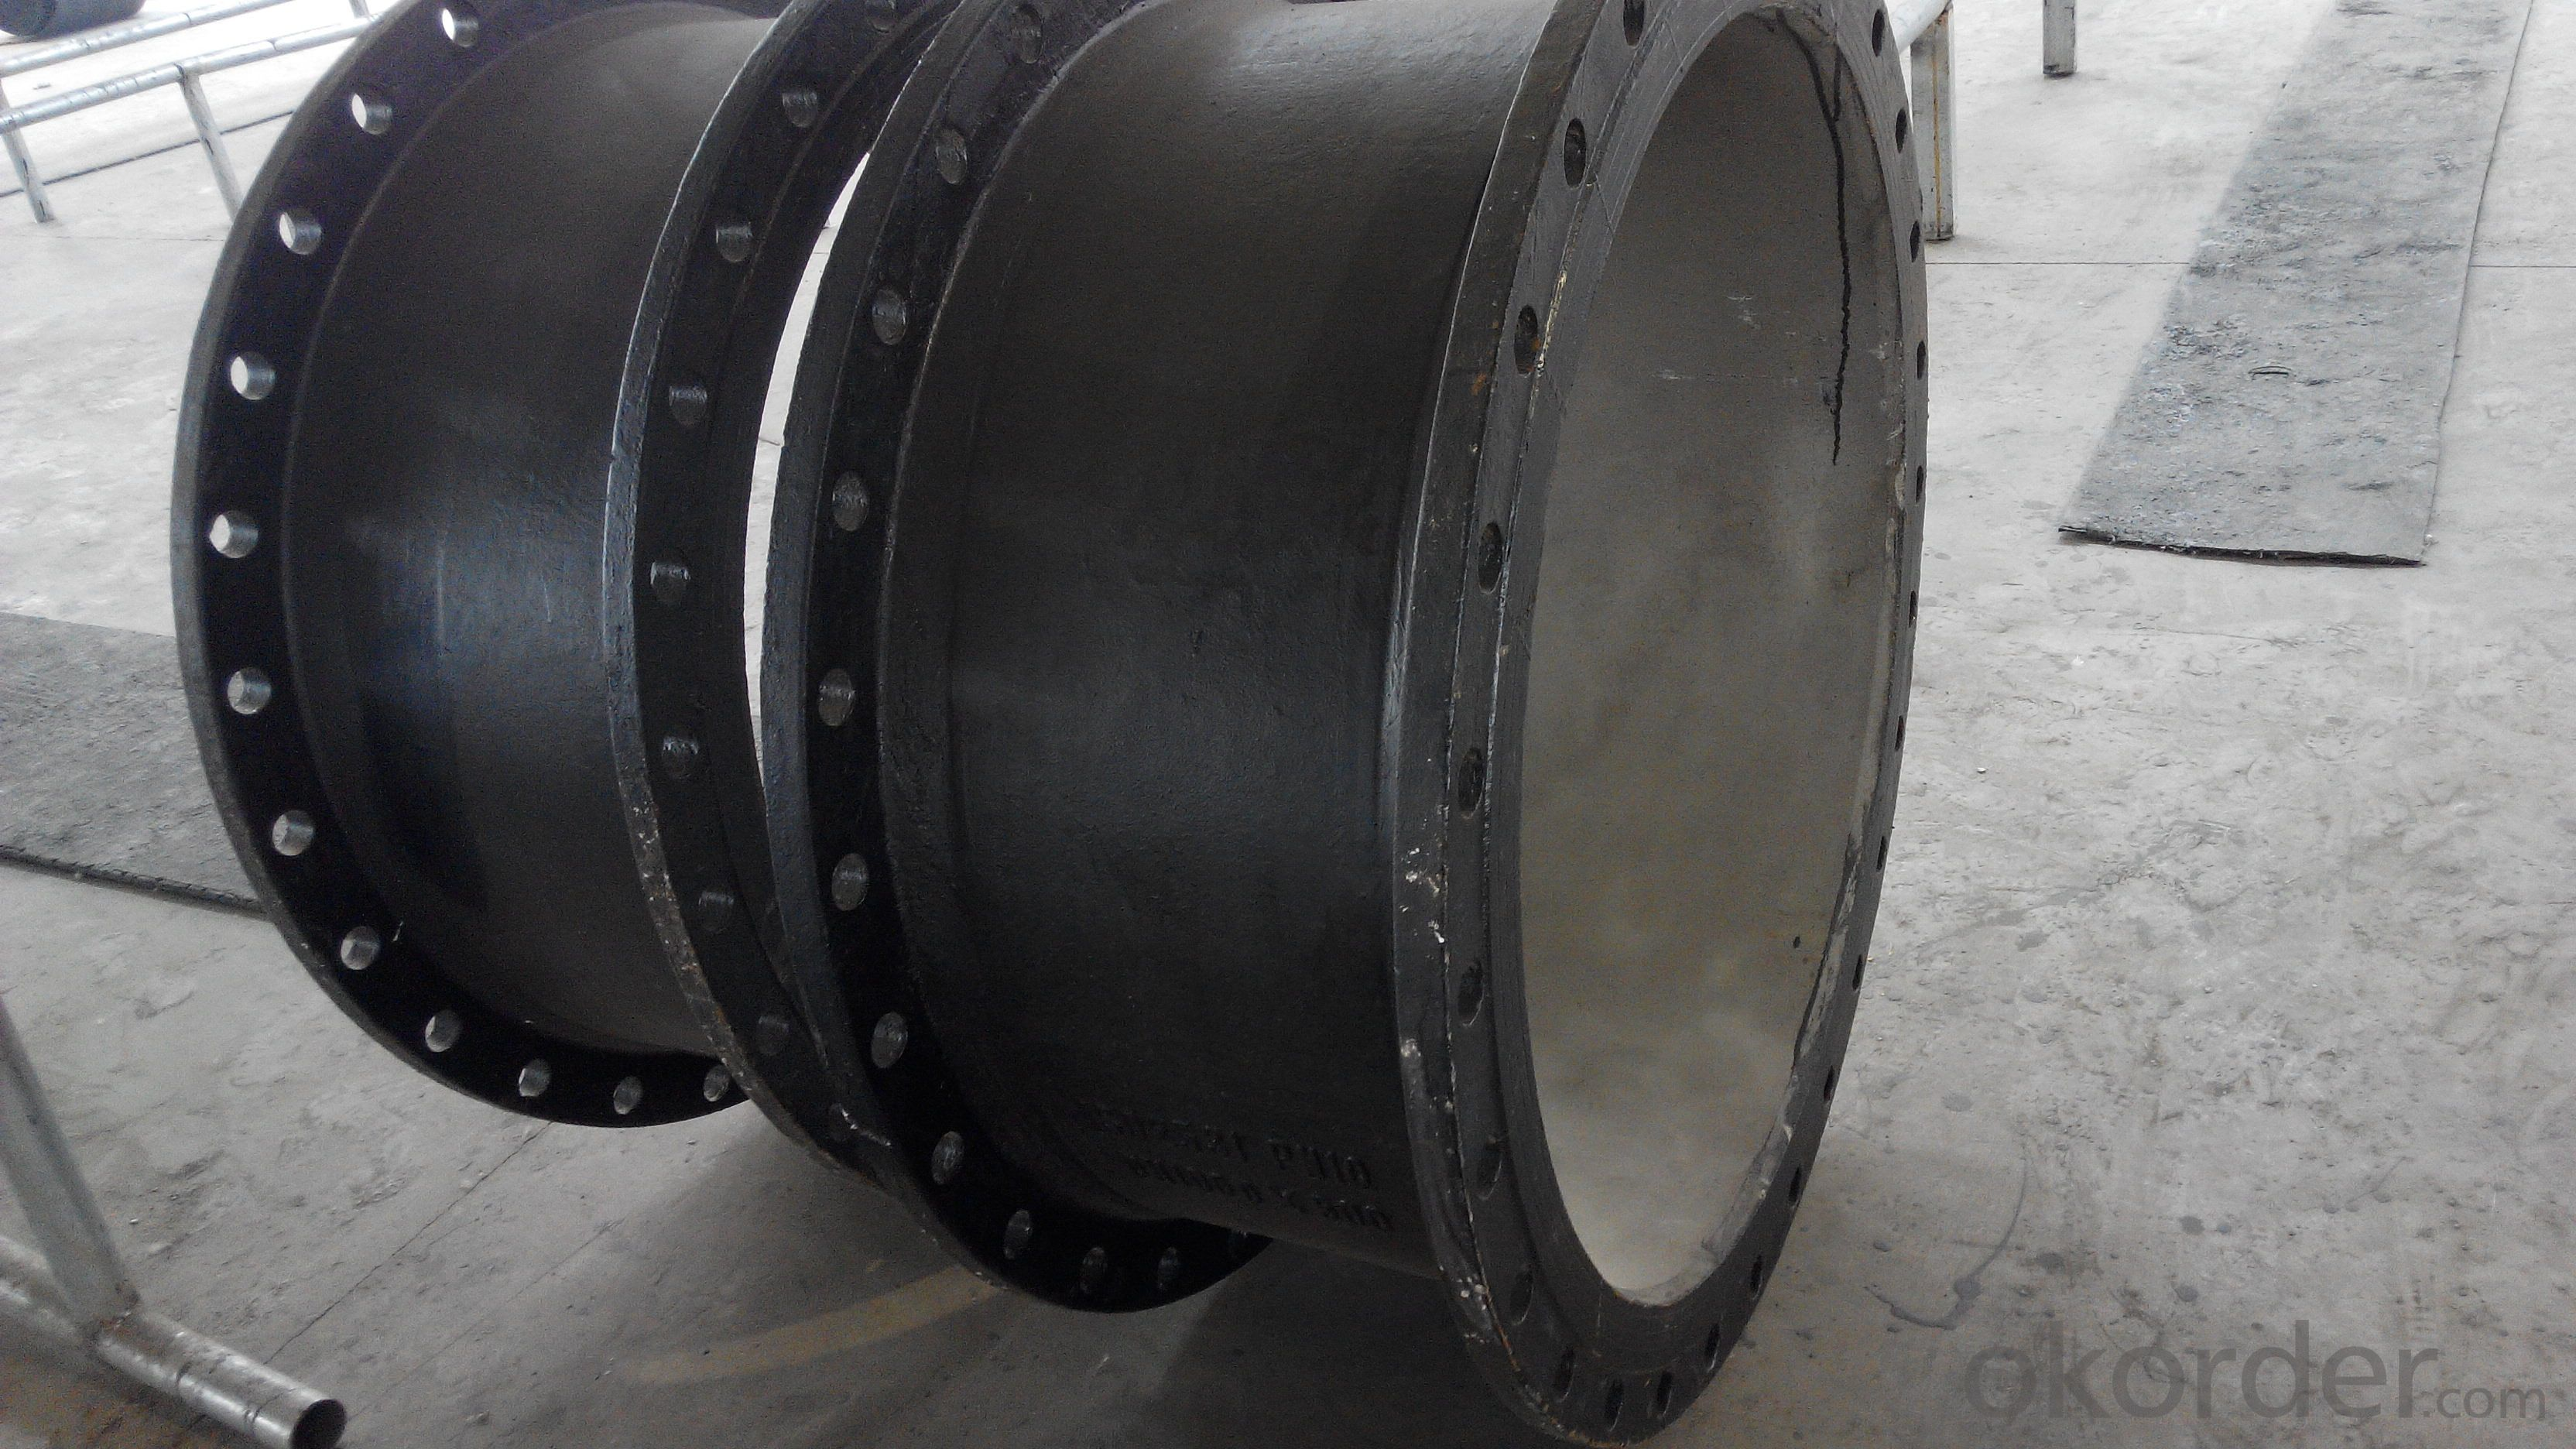 FM UL approved fm/ul ductile iron fitting